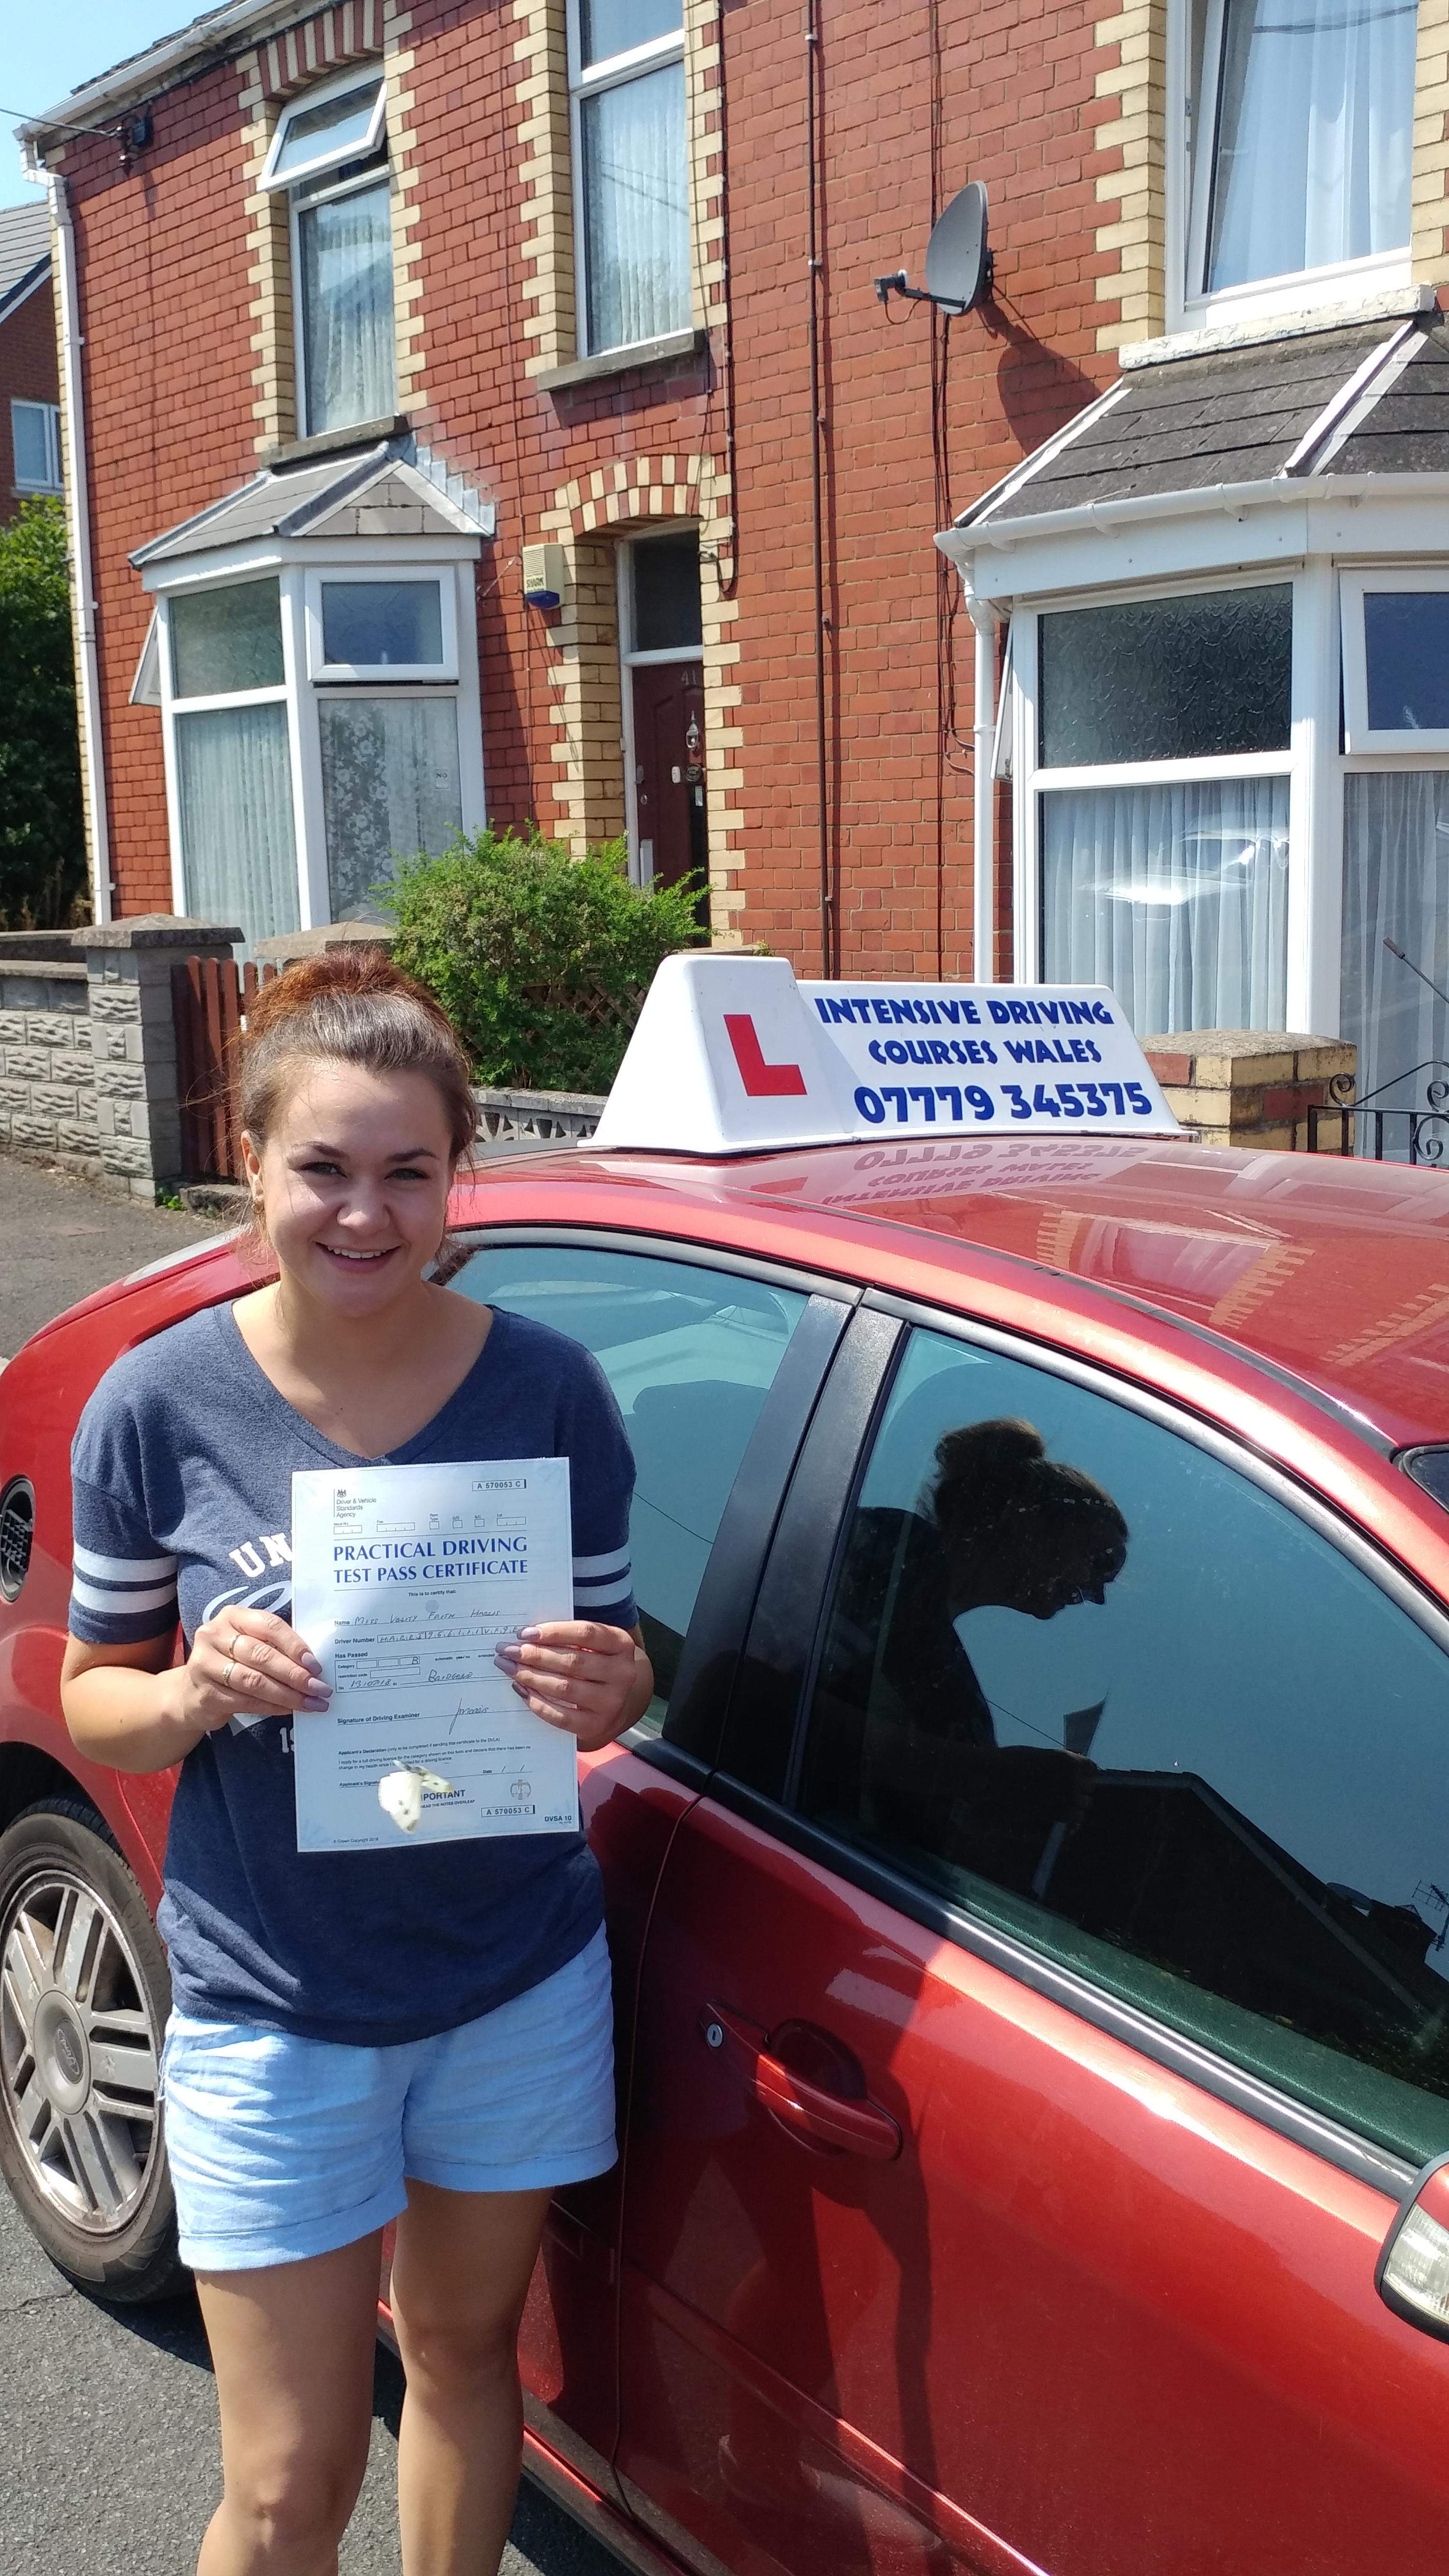 Pass your driving test 1st time with an intensive driving course in Cardiff